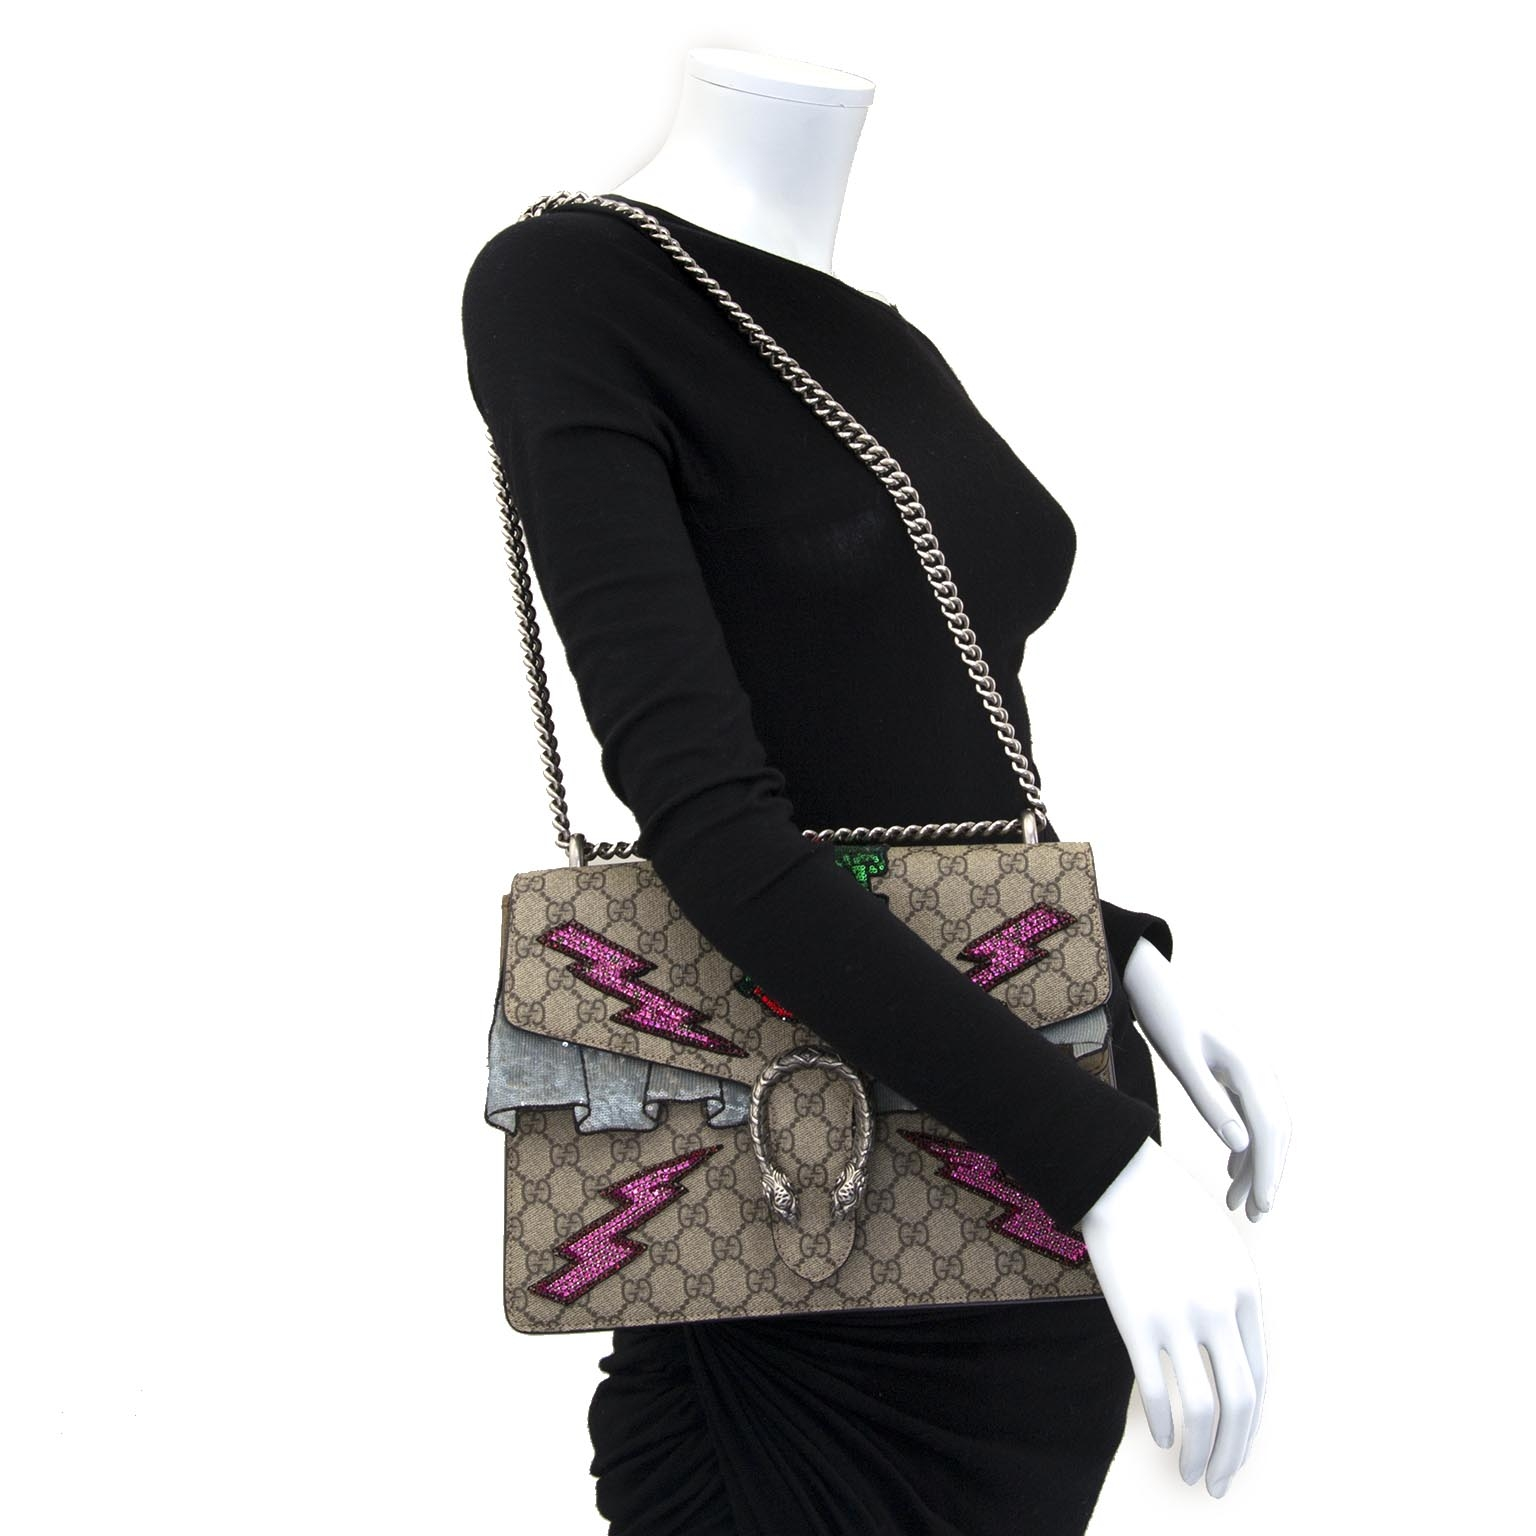 gucci gg dionysus supreme ebroidered monogram shoulder bag now for sale at labellov vintage fashion webshop belgium